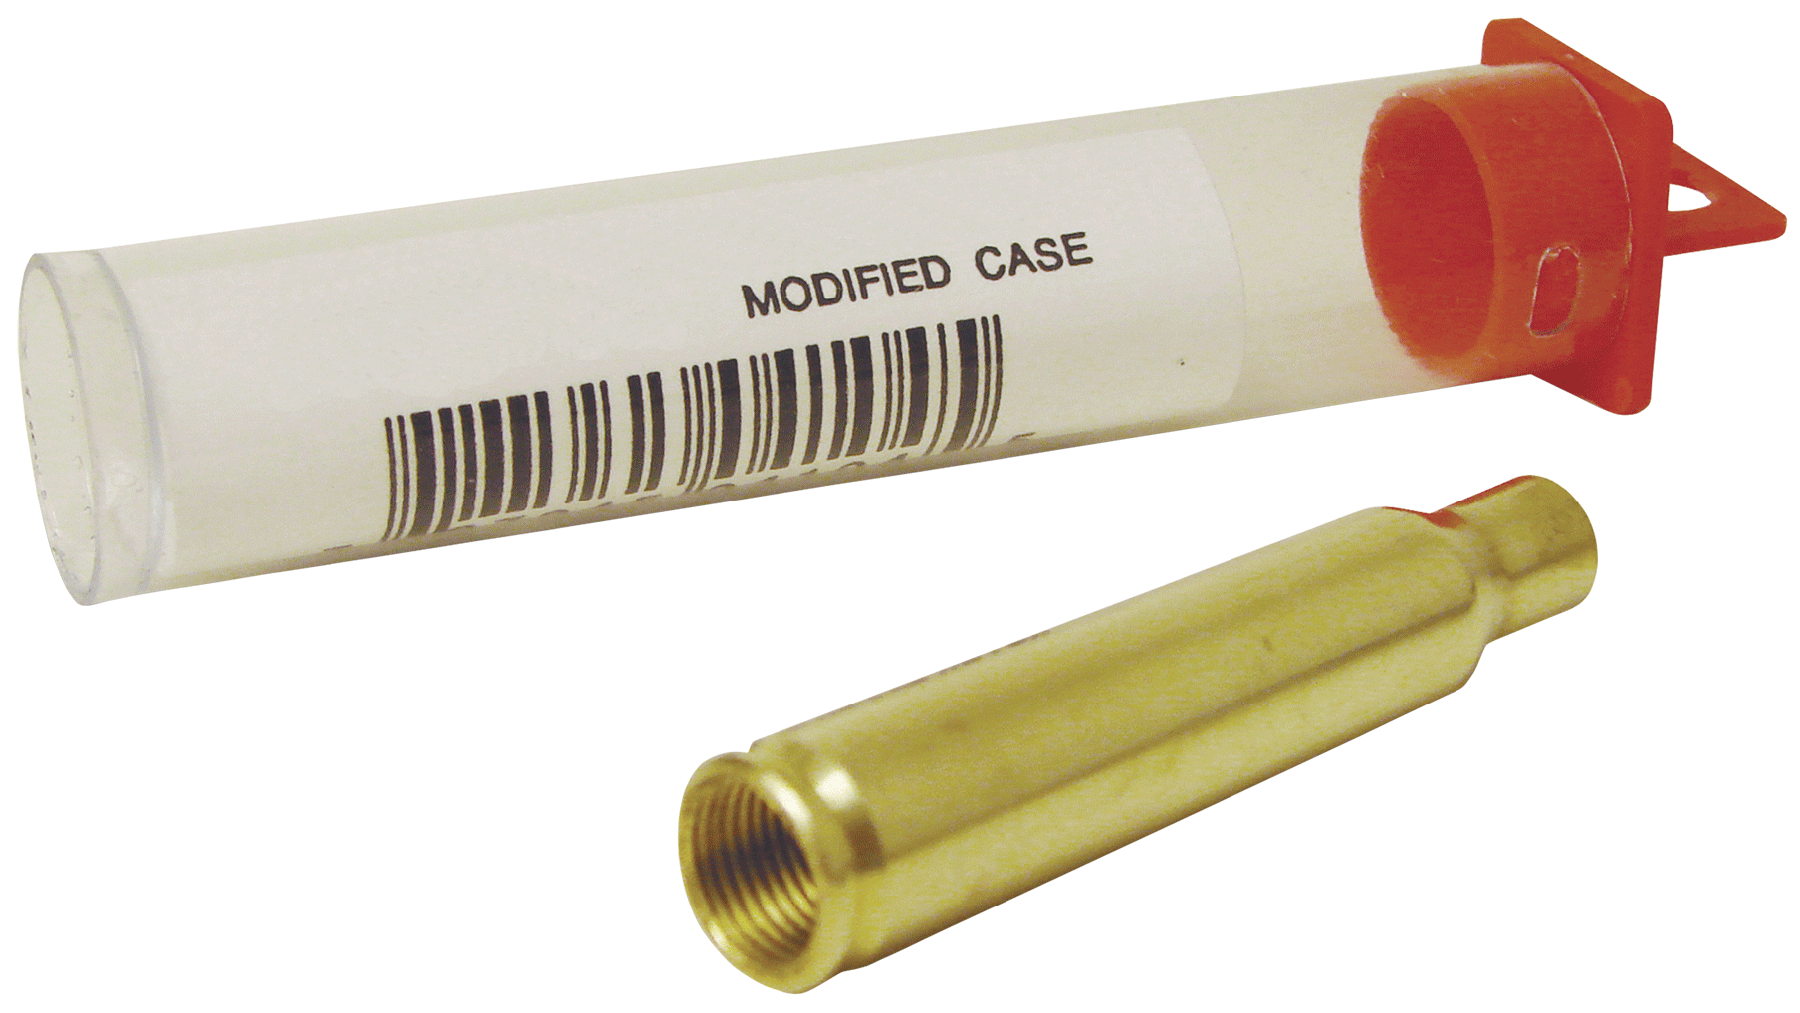 Hornady Lock-N-Load Modified Case - 6.5 Creedmoor